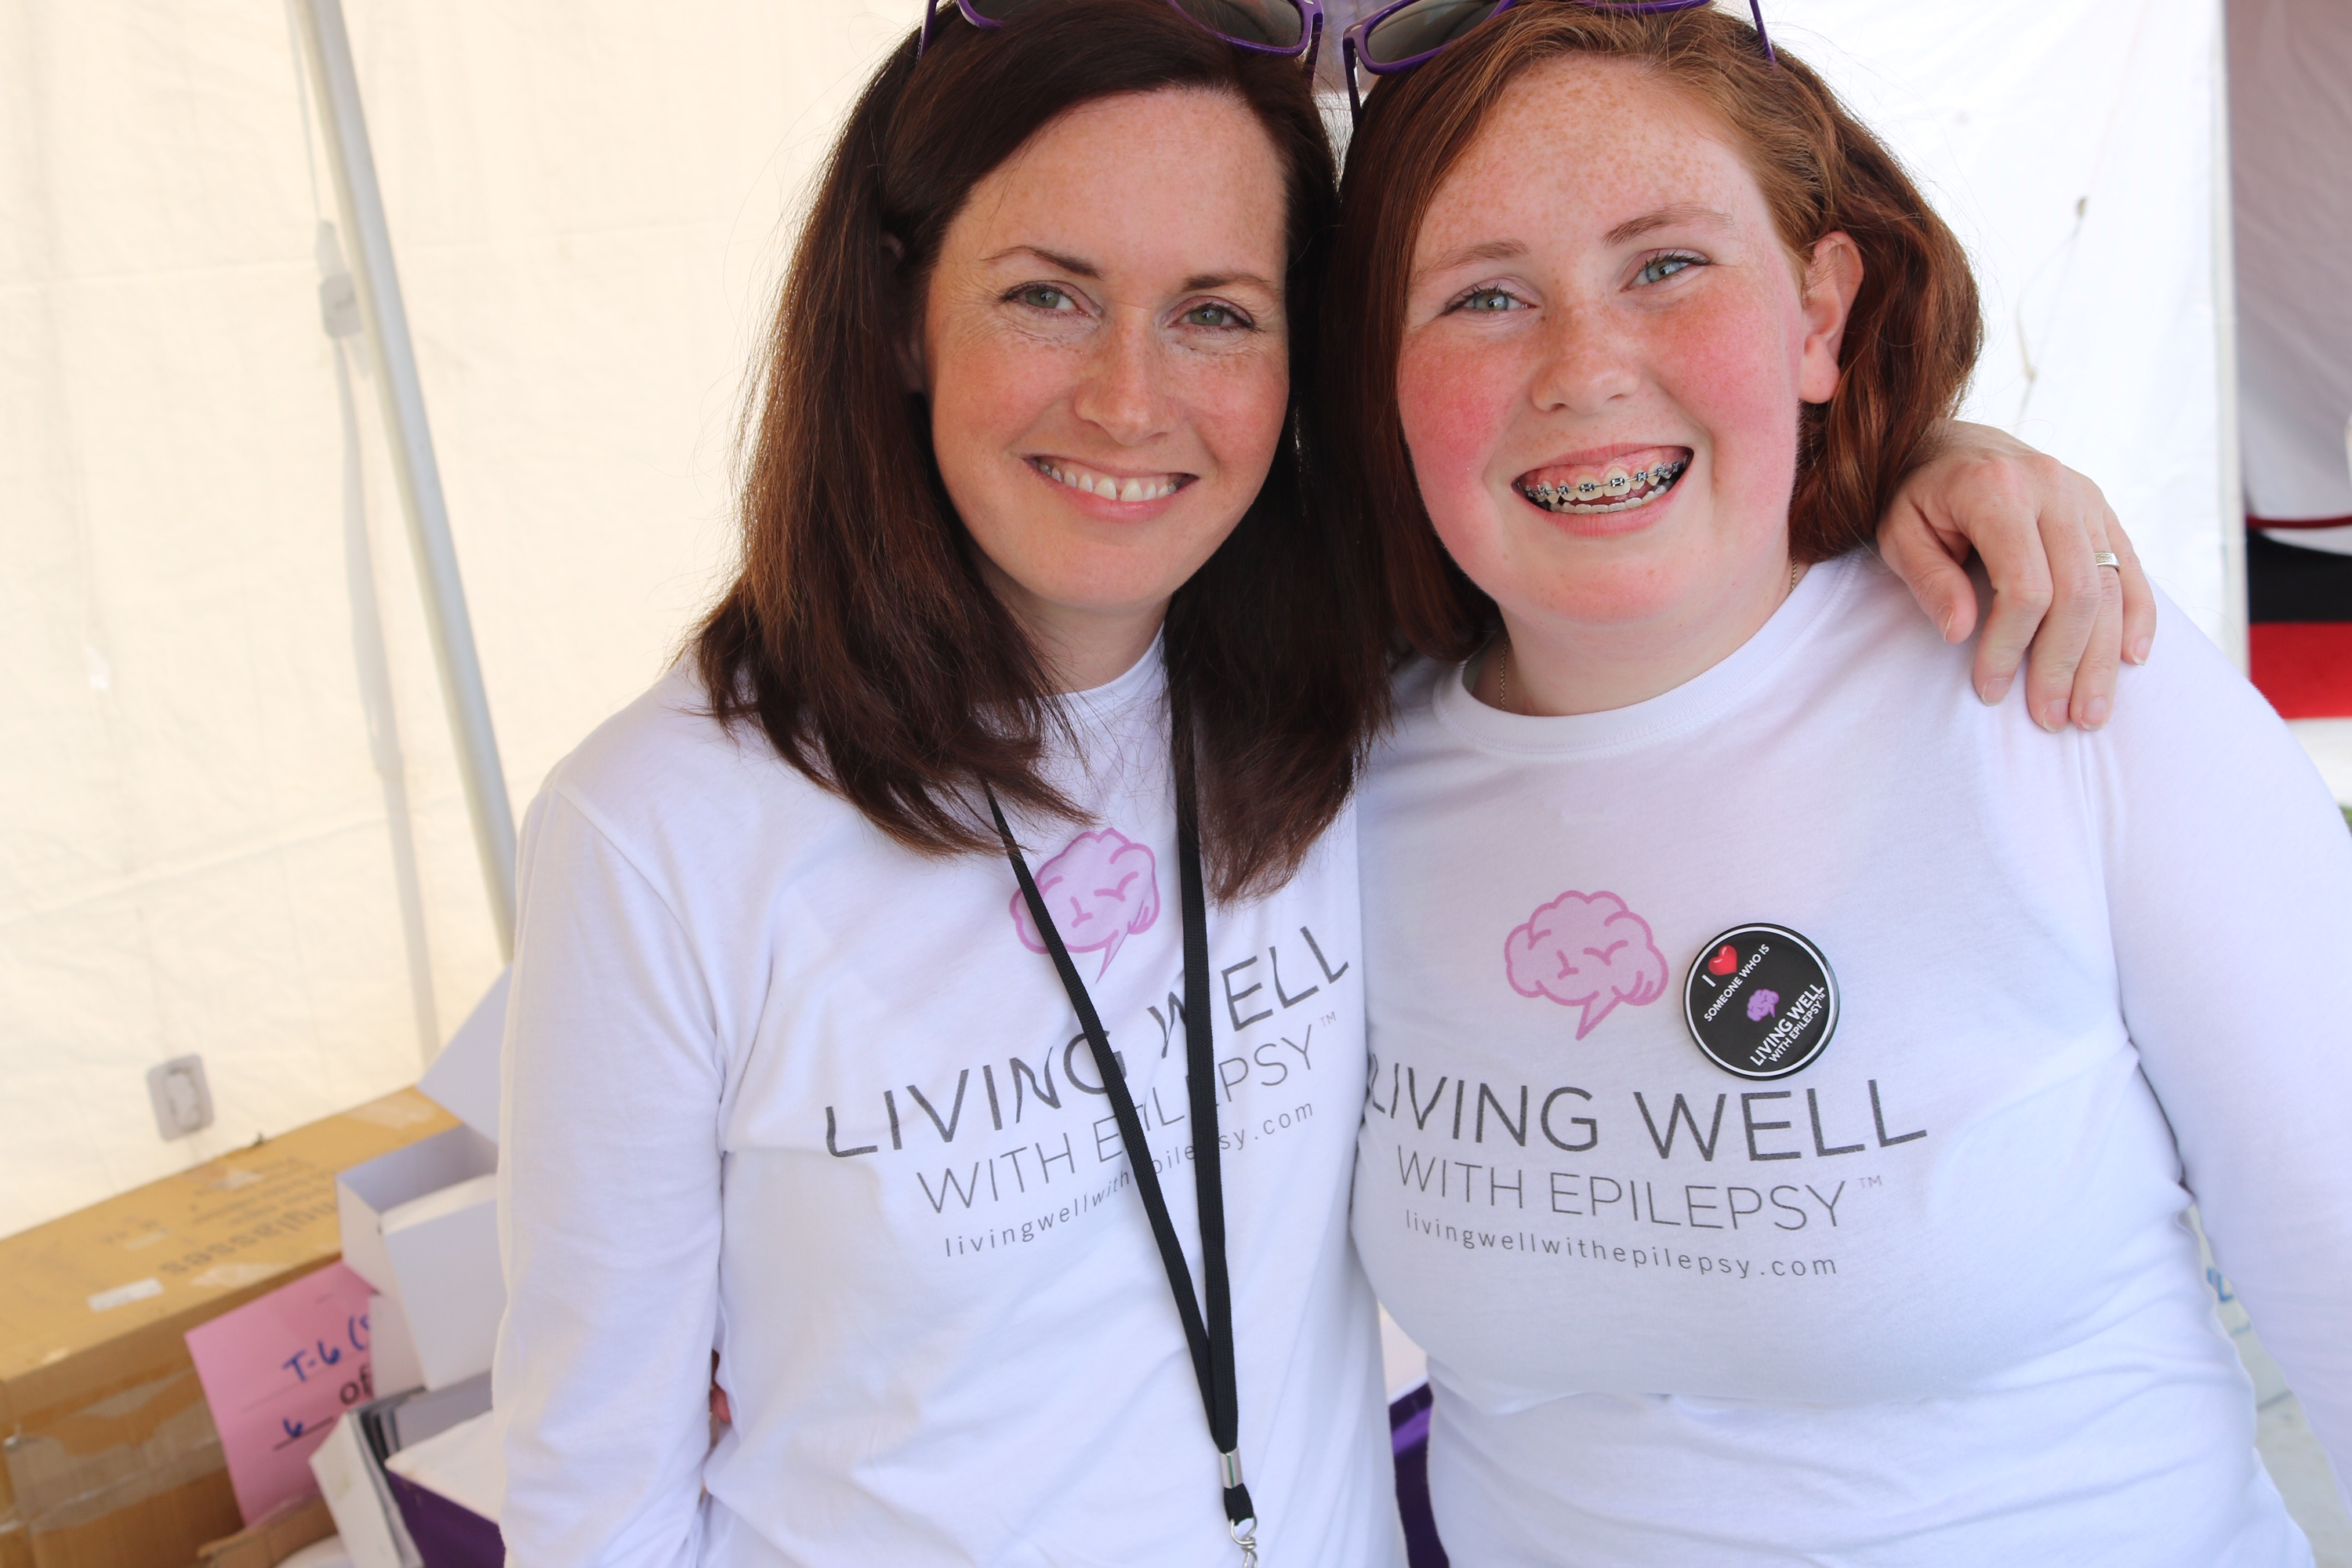 Jessica Smith: Living Well with Epilepsy